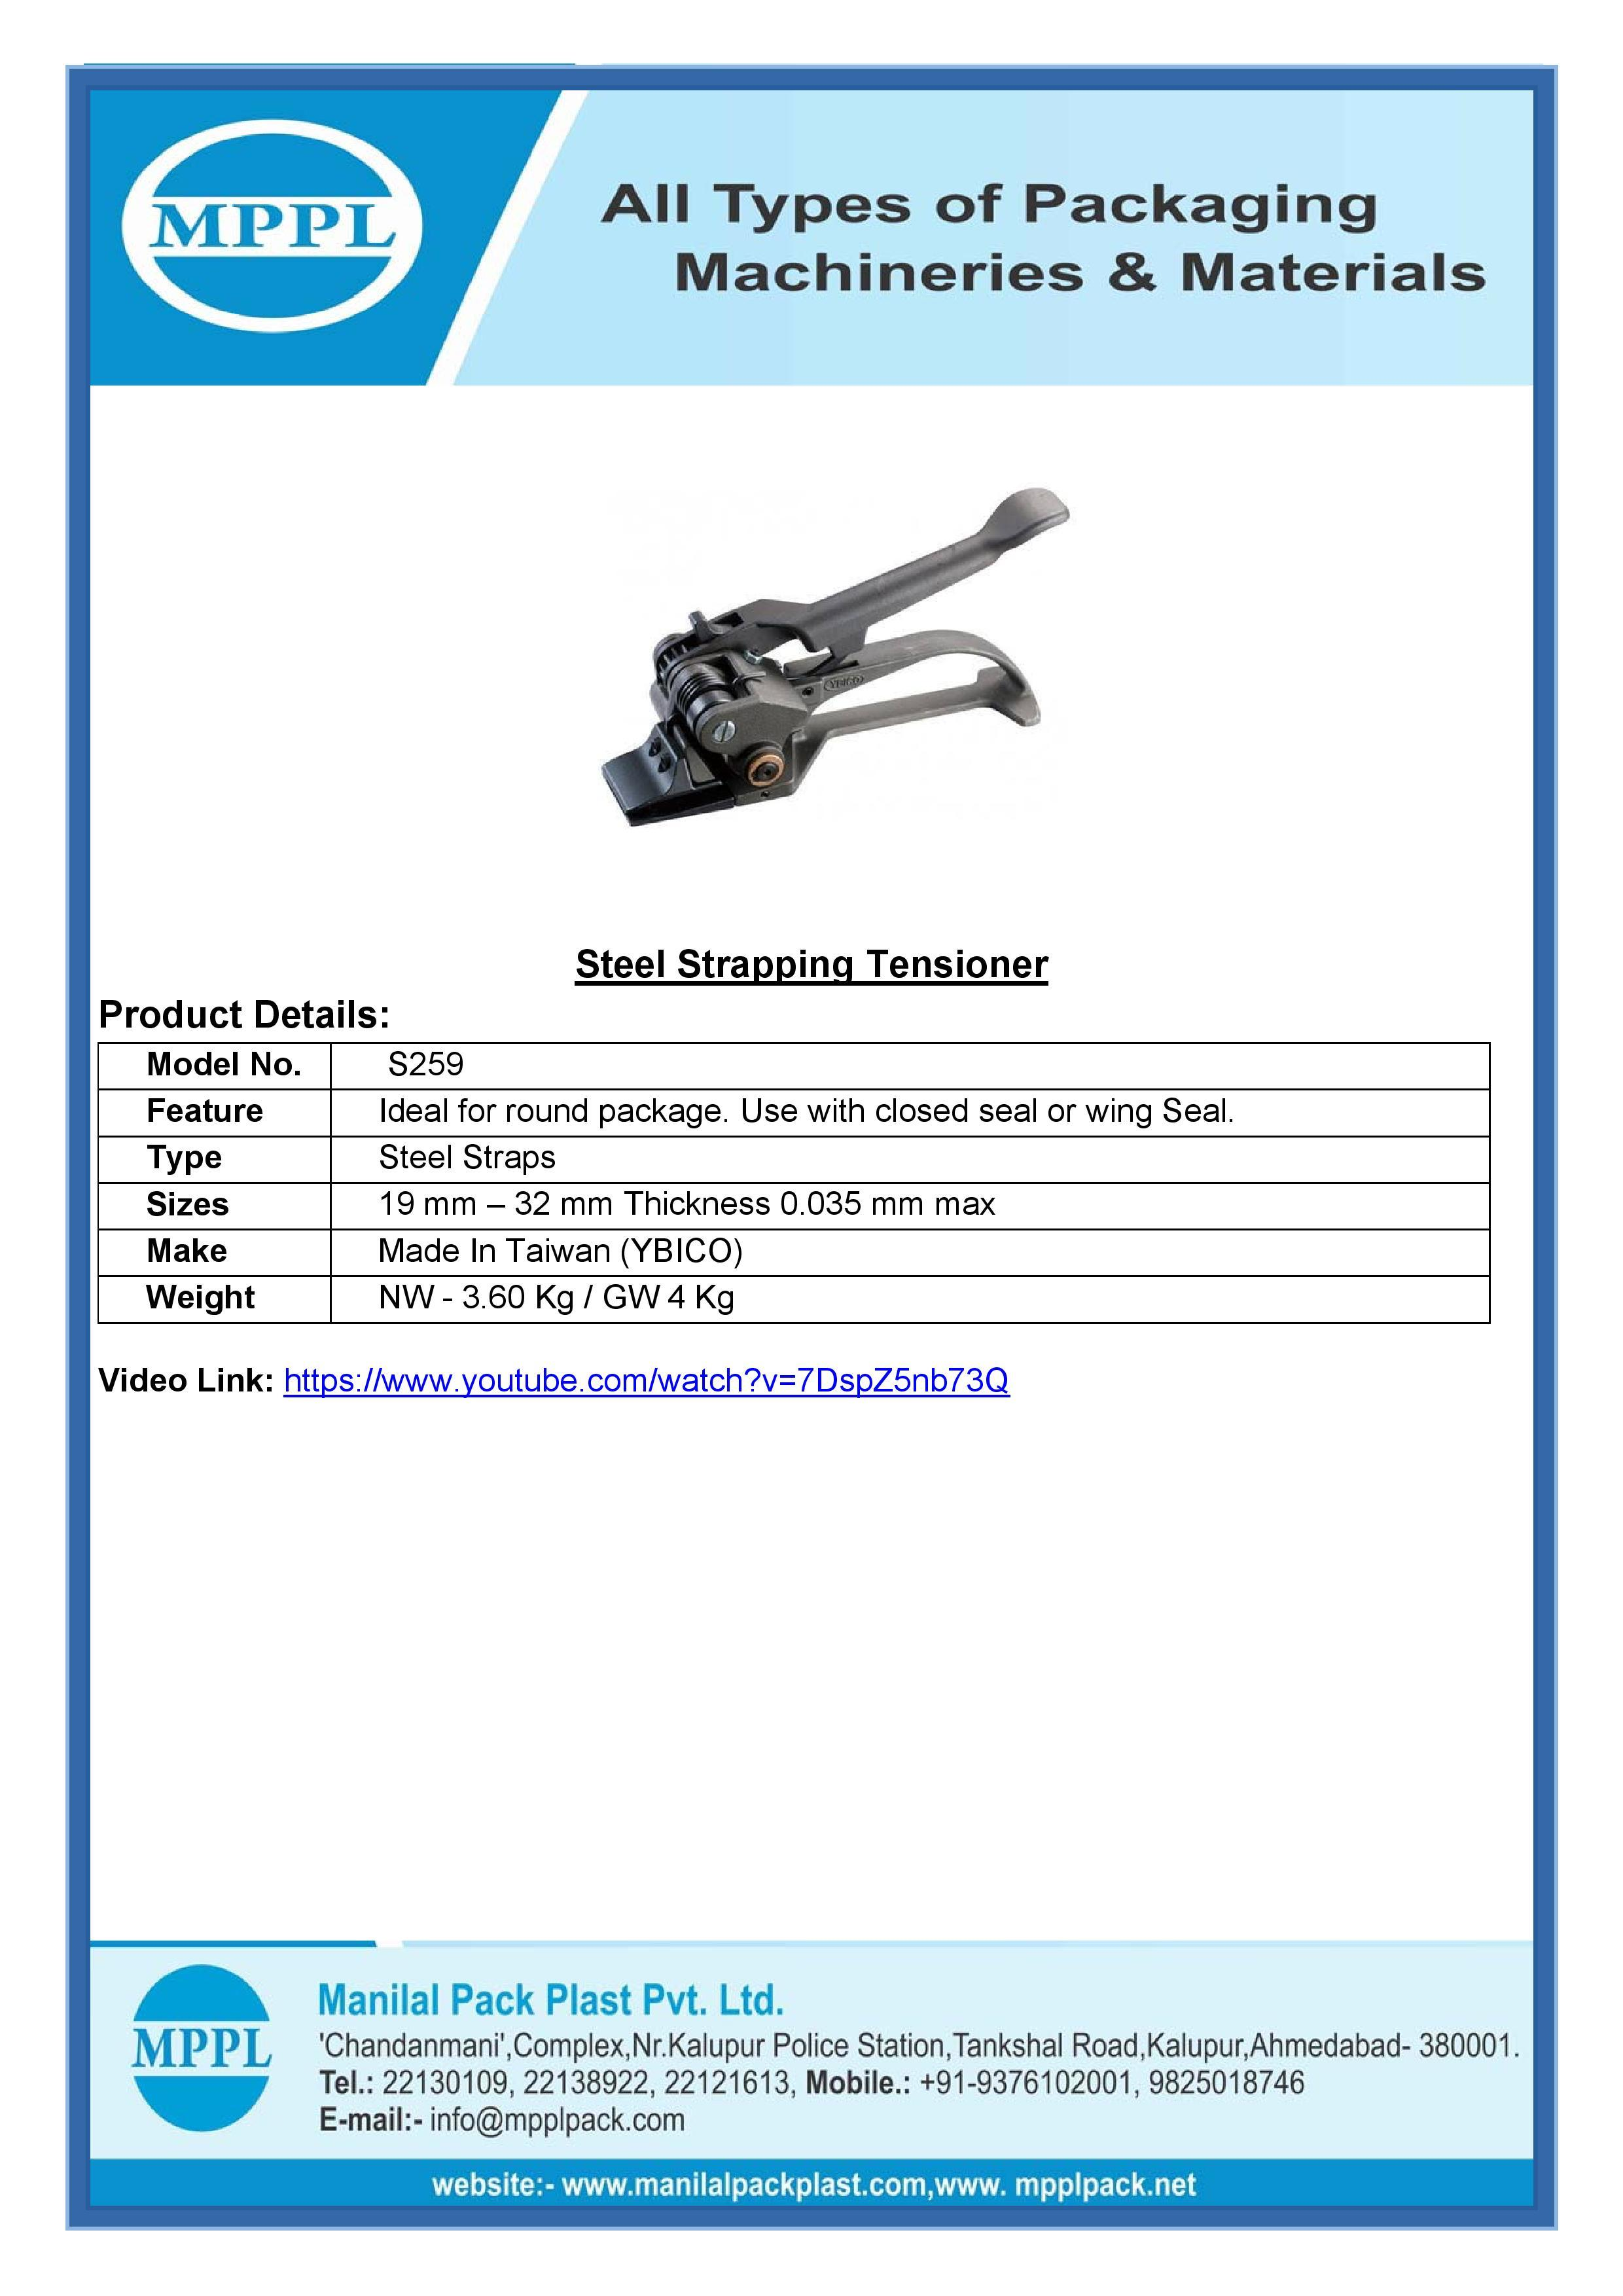 Steel Strapping Tensioner S259